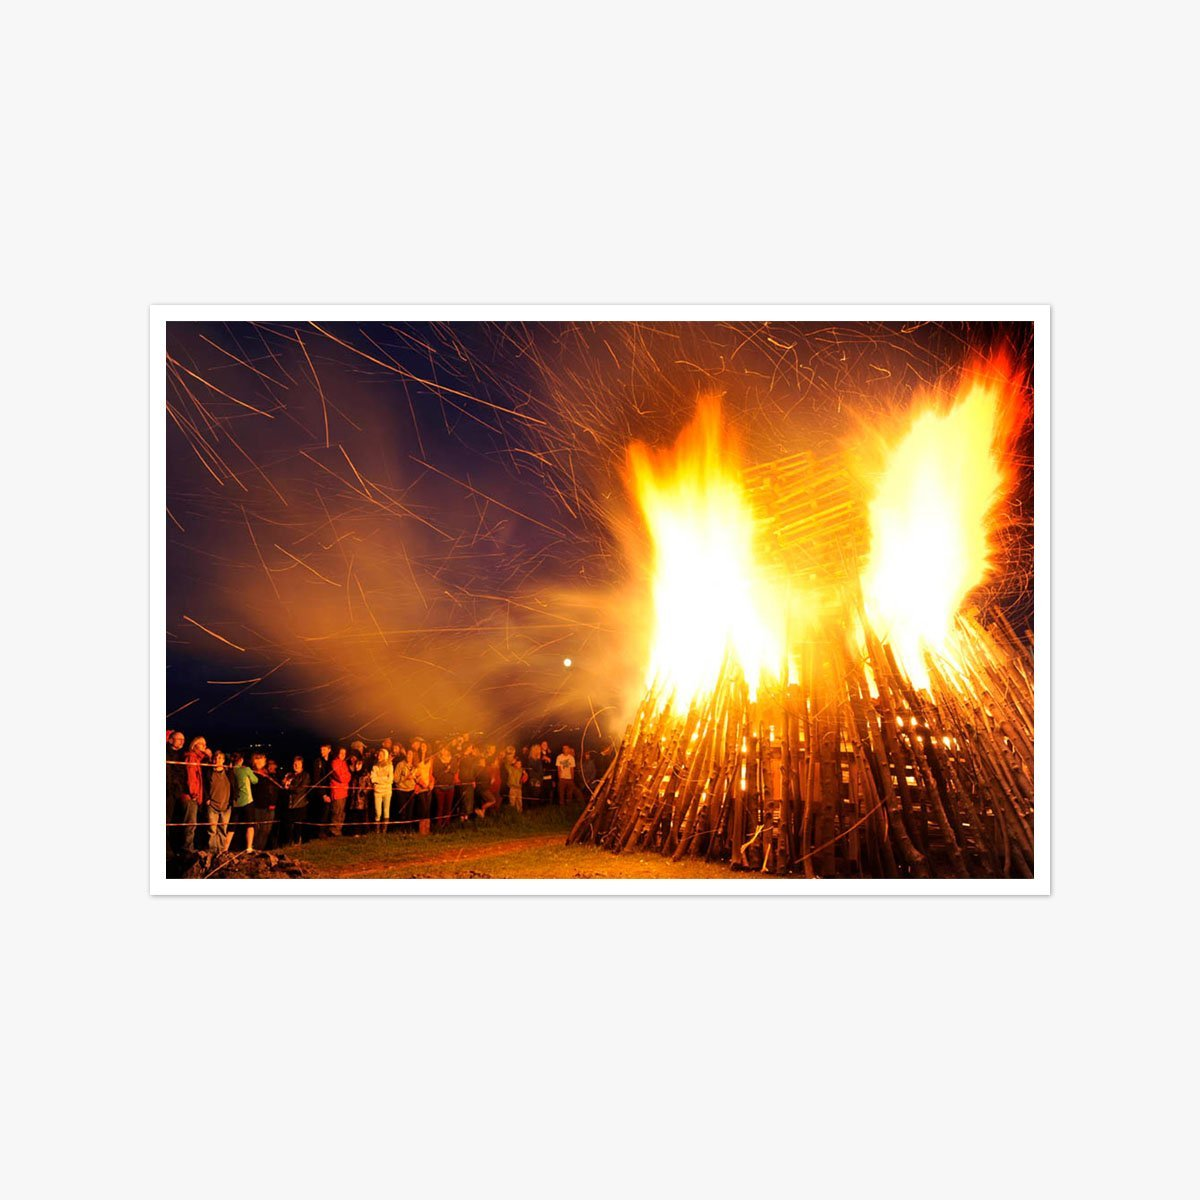 Diamond Jubilee Beacon by Lucy Young